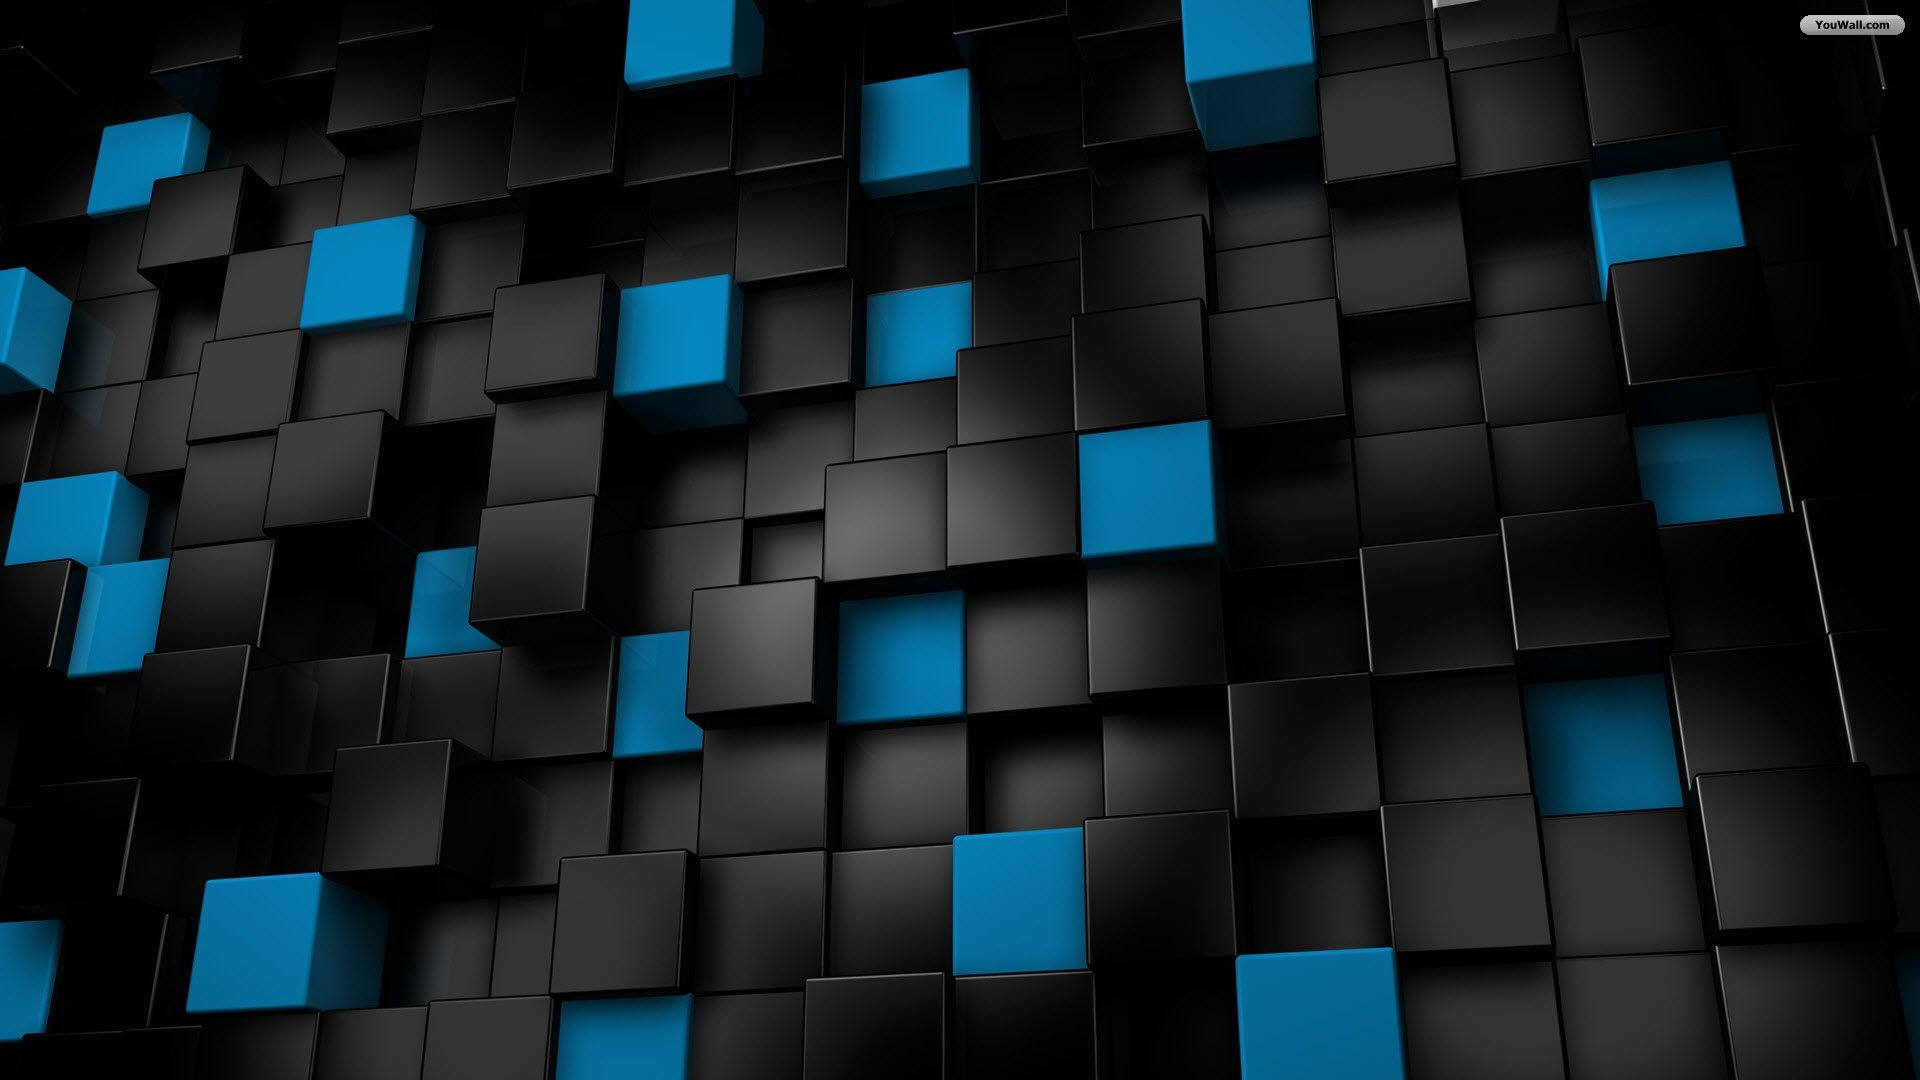 Blue Abstract Wallpaper For PC, Blue Abstract Wallpapers in HQ